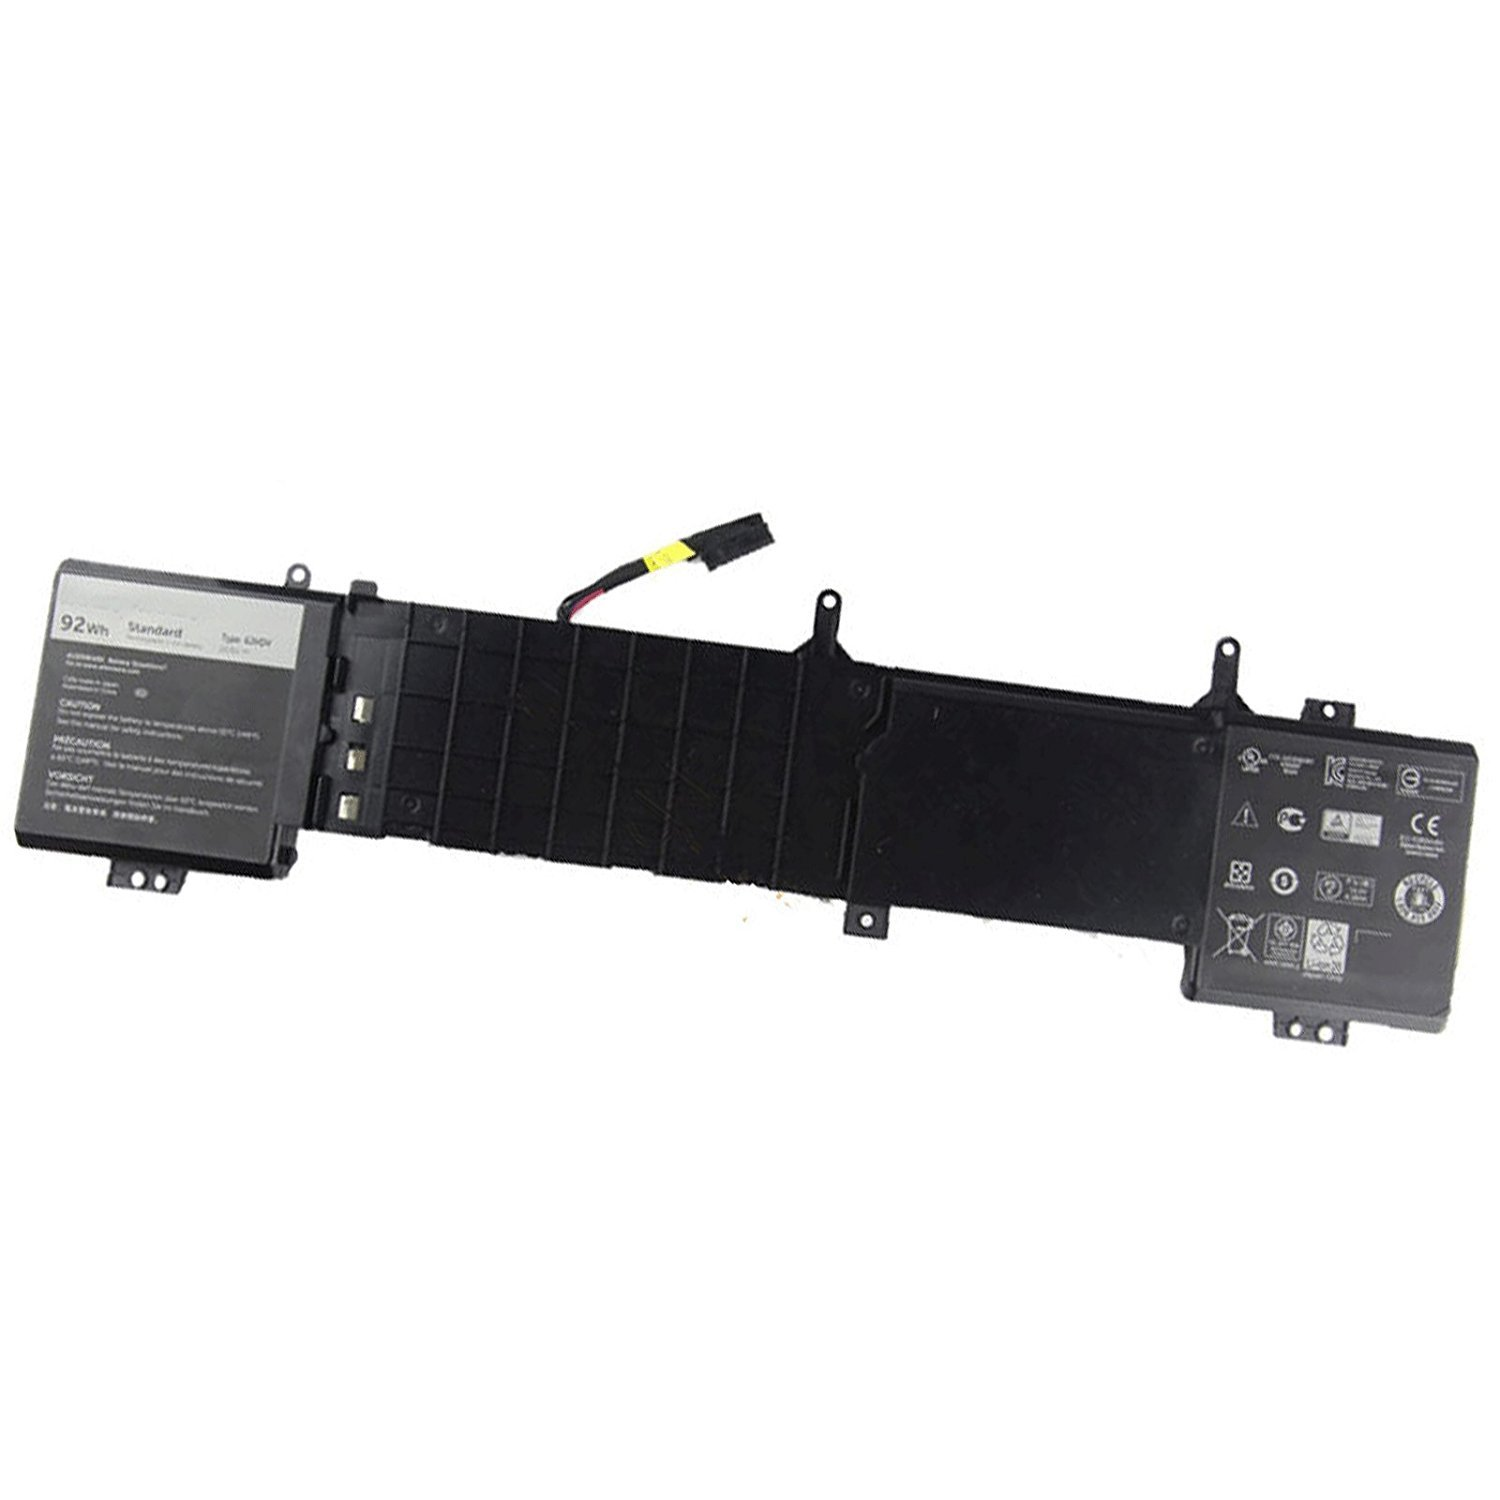 Batterymarket Replacement Laptop Battery for Alienware 17 R2 5046J P43F Series Dell 6JHDV (14.8V 92Wh)